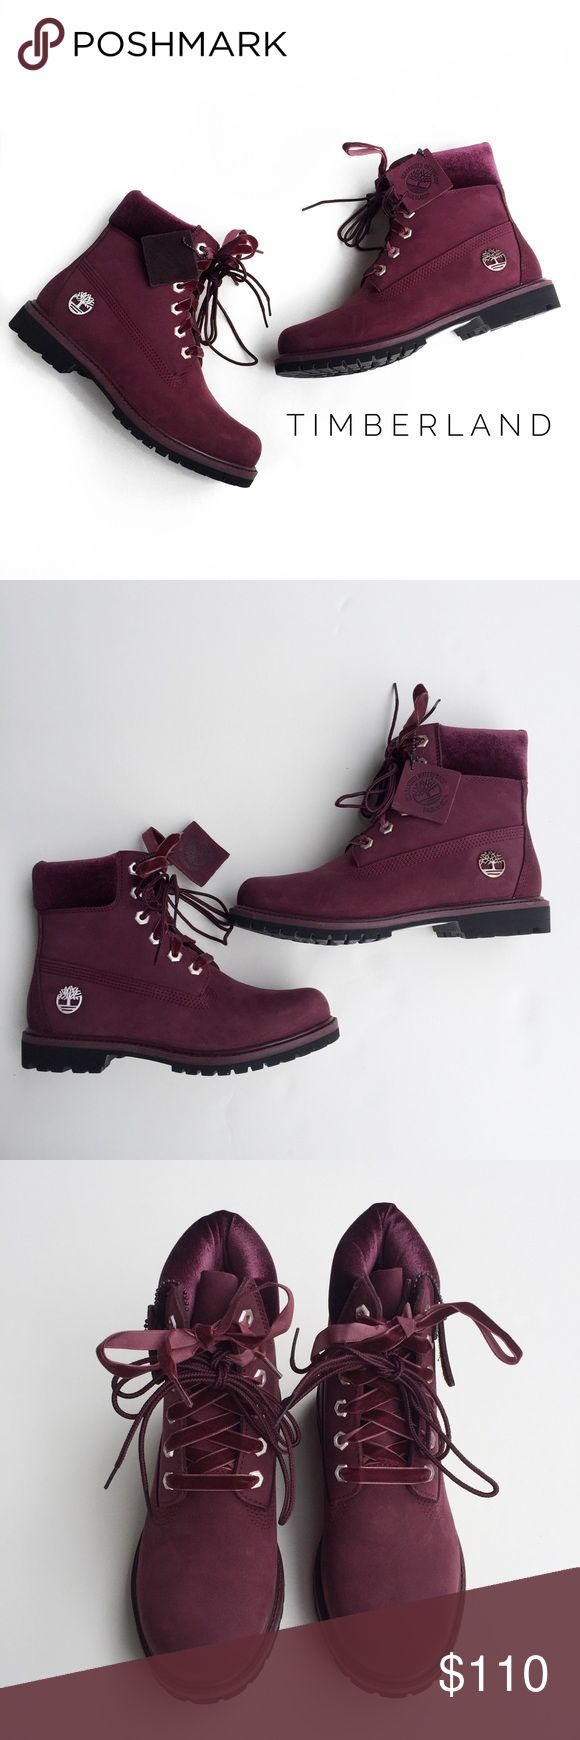 • timberland boots • these are brand new in excellent condition with no signs of wear. these have never been worn. box is not included. there are two sets of laces that will come with these.   these were bought at a sample sale.   the coloring is maroon/burgundy and the ankle part is velvet.   these are the 6inch premium boot. please reference to the timberland website for help with sizing. from my experience timberlands generally run big so most of the time it's recommended to go at least a…